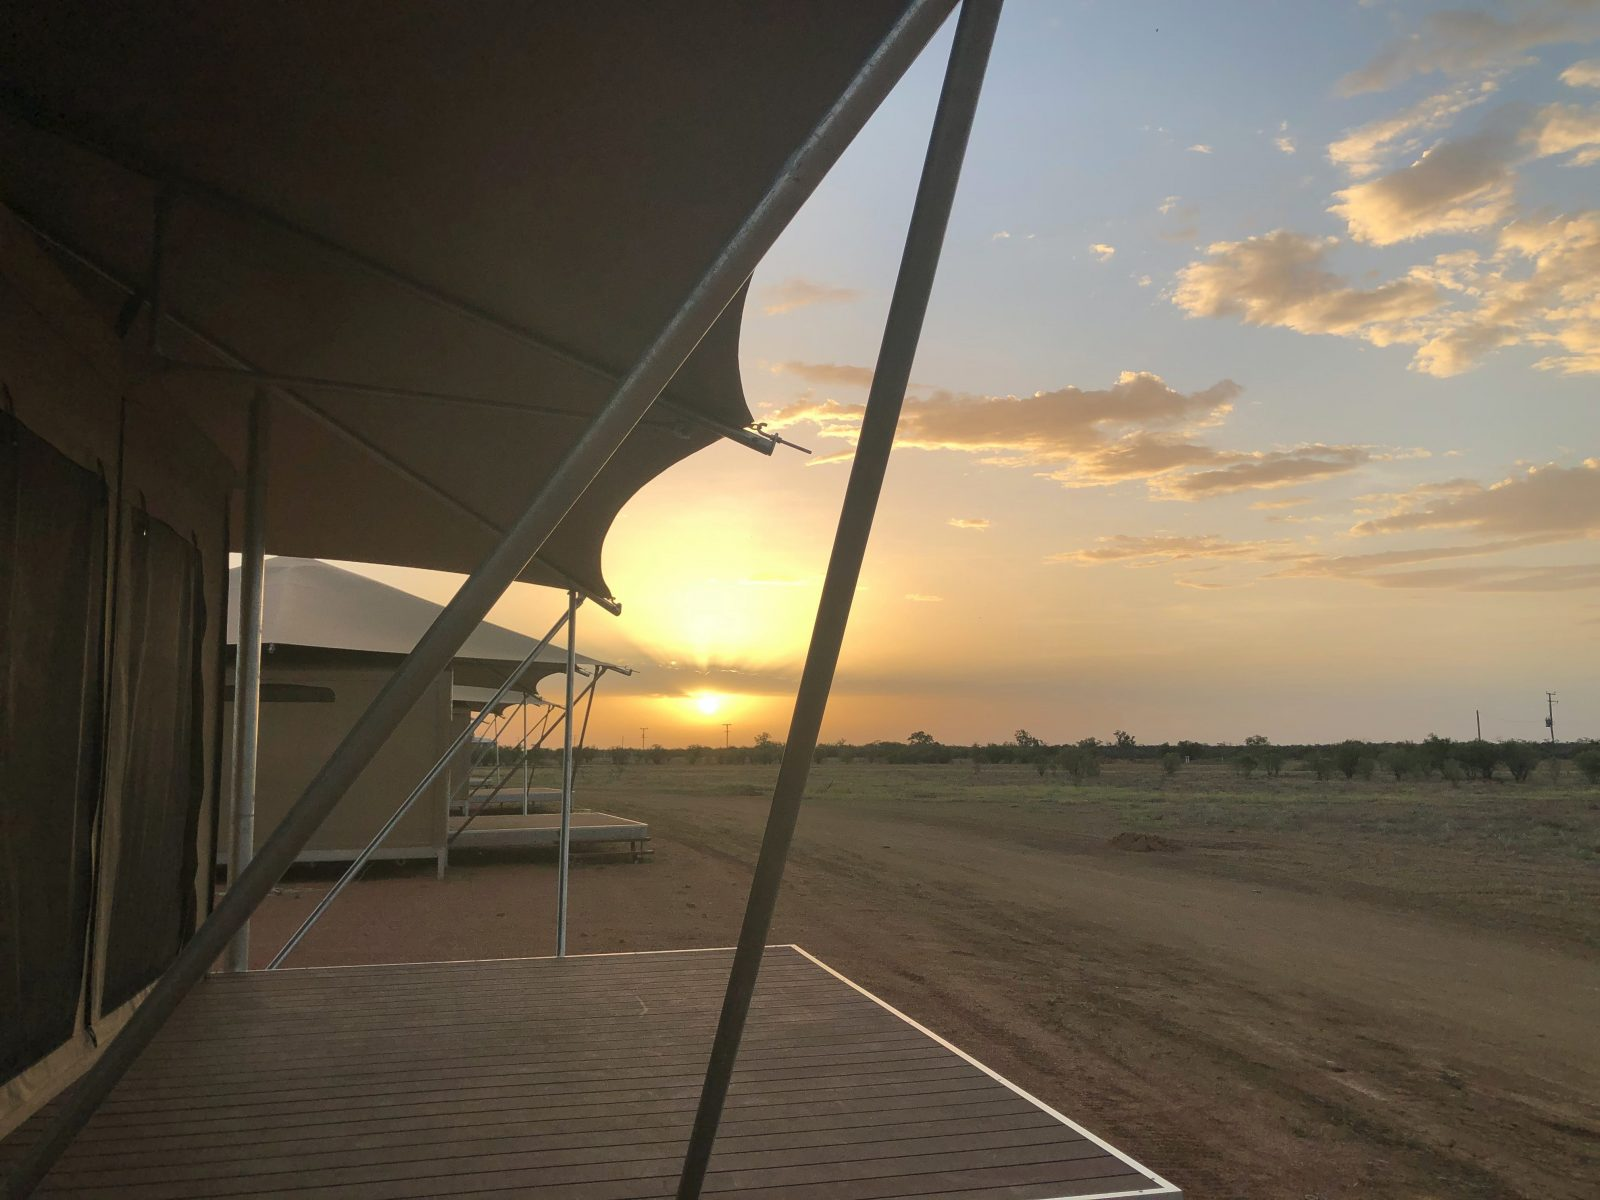 Mitchell Grass Retreat Outback Sunset, Luxury Glamping Tents,Longreach, Outback Queensland